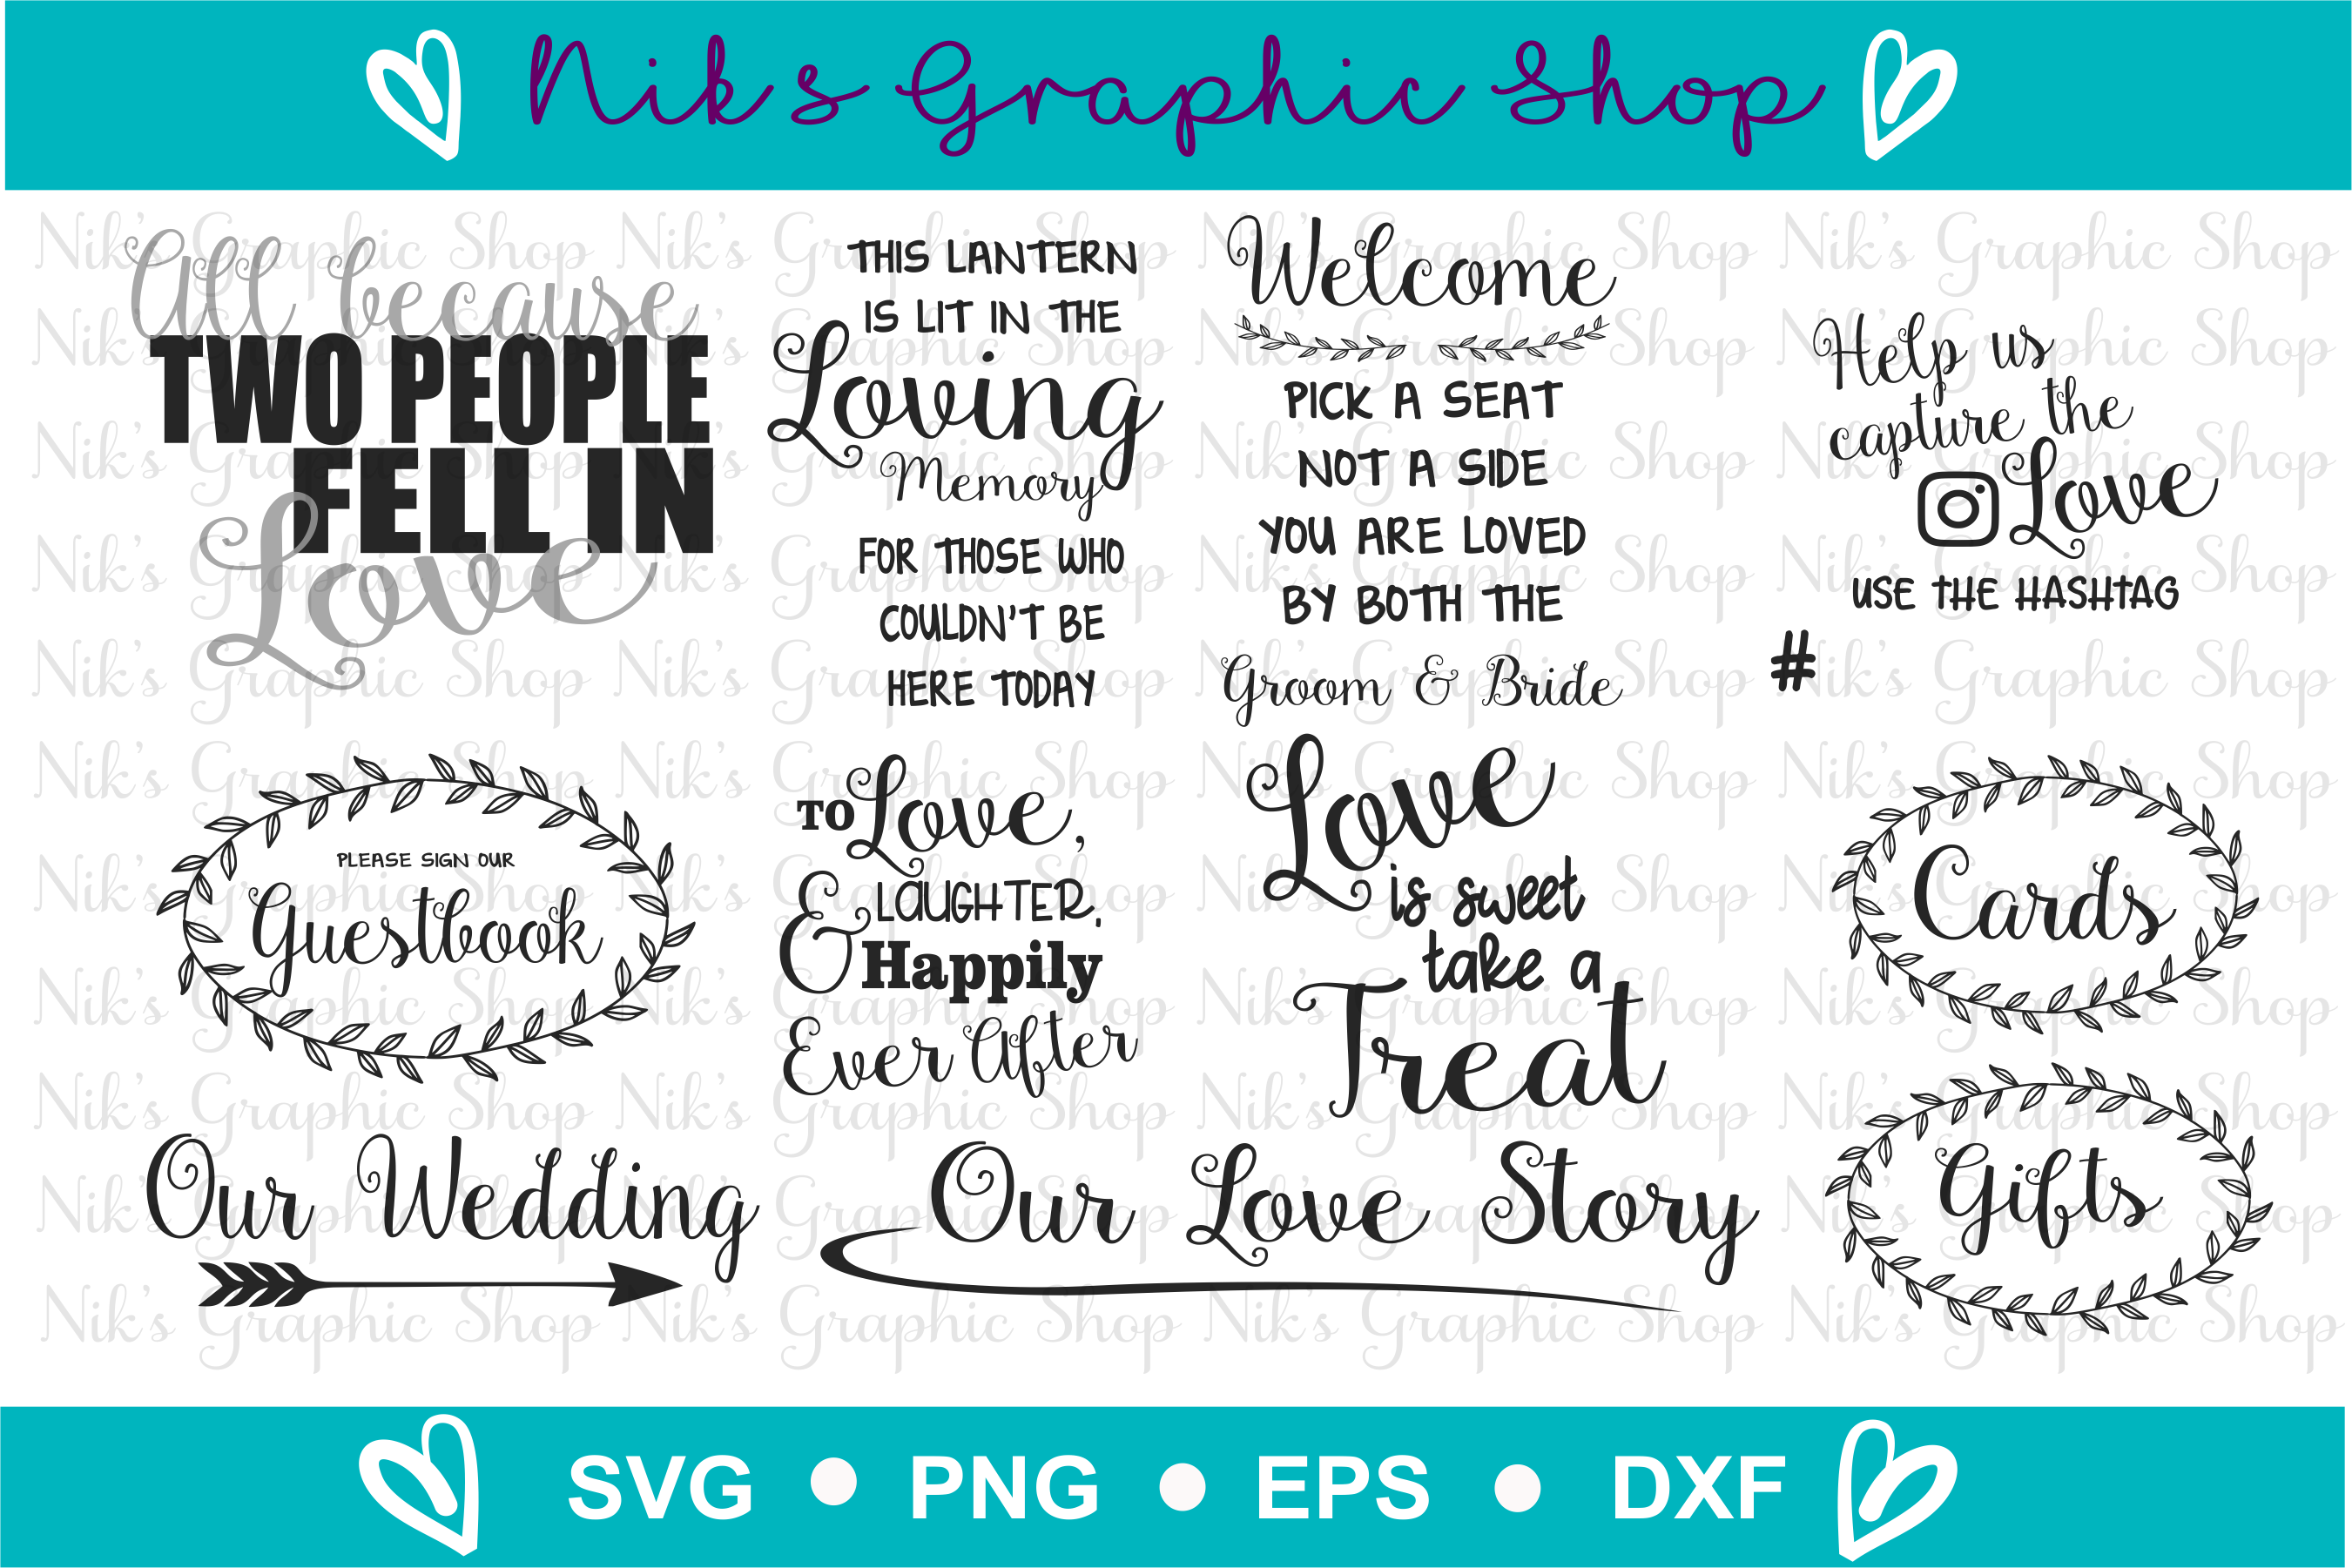 Wedding Sign Svgs, Wedding Svg, Sign Svgs, Love Svgs example image 8